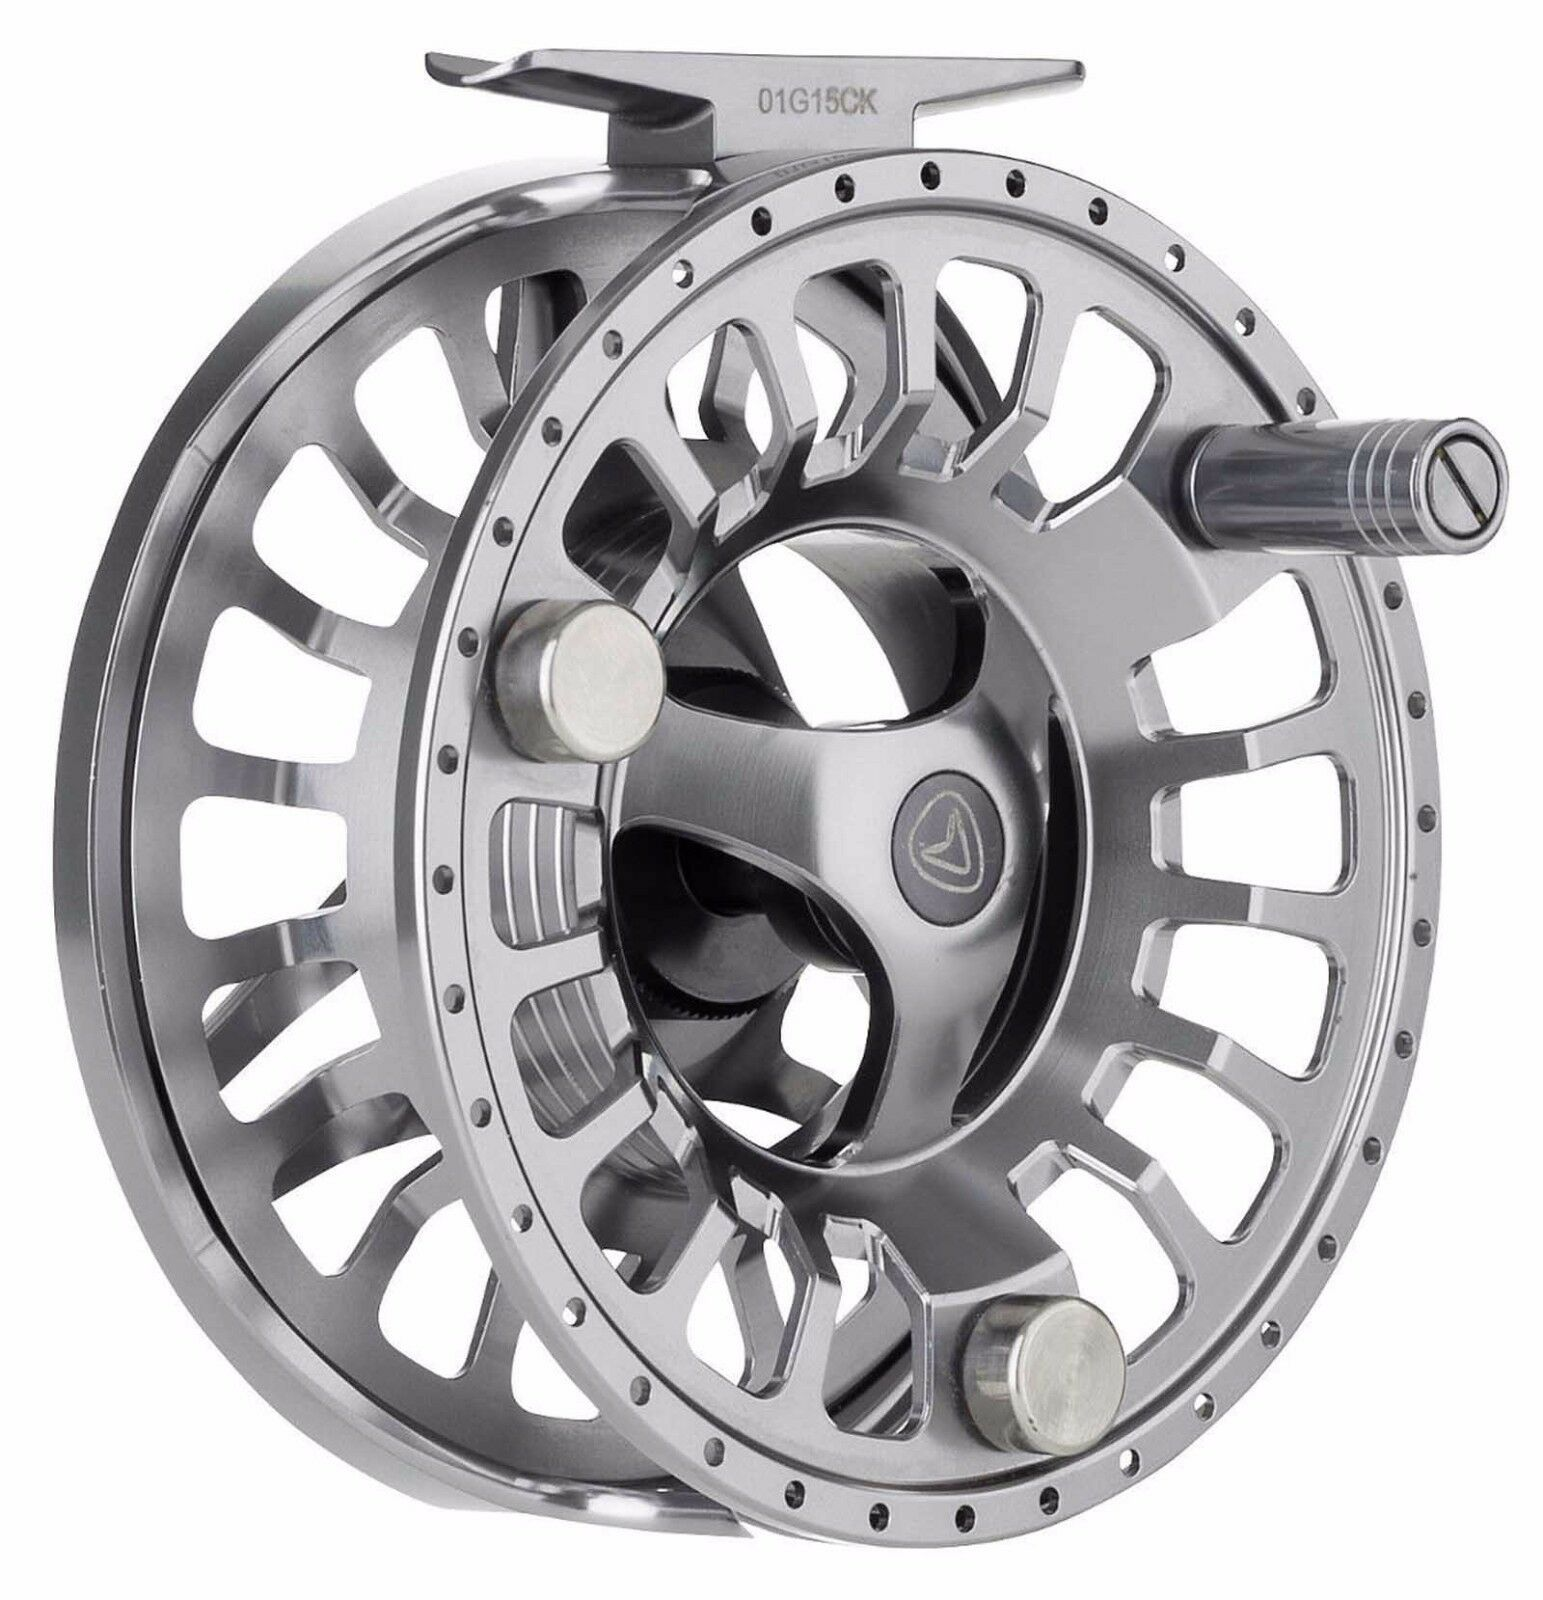 Graus New 2017 GTS900 Trout & Salmon Fly Fishing Reels + Neoprene Case All Größes